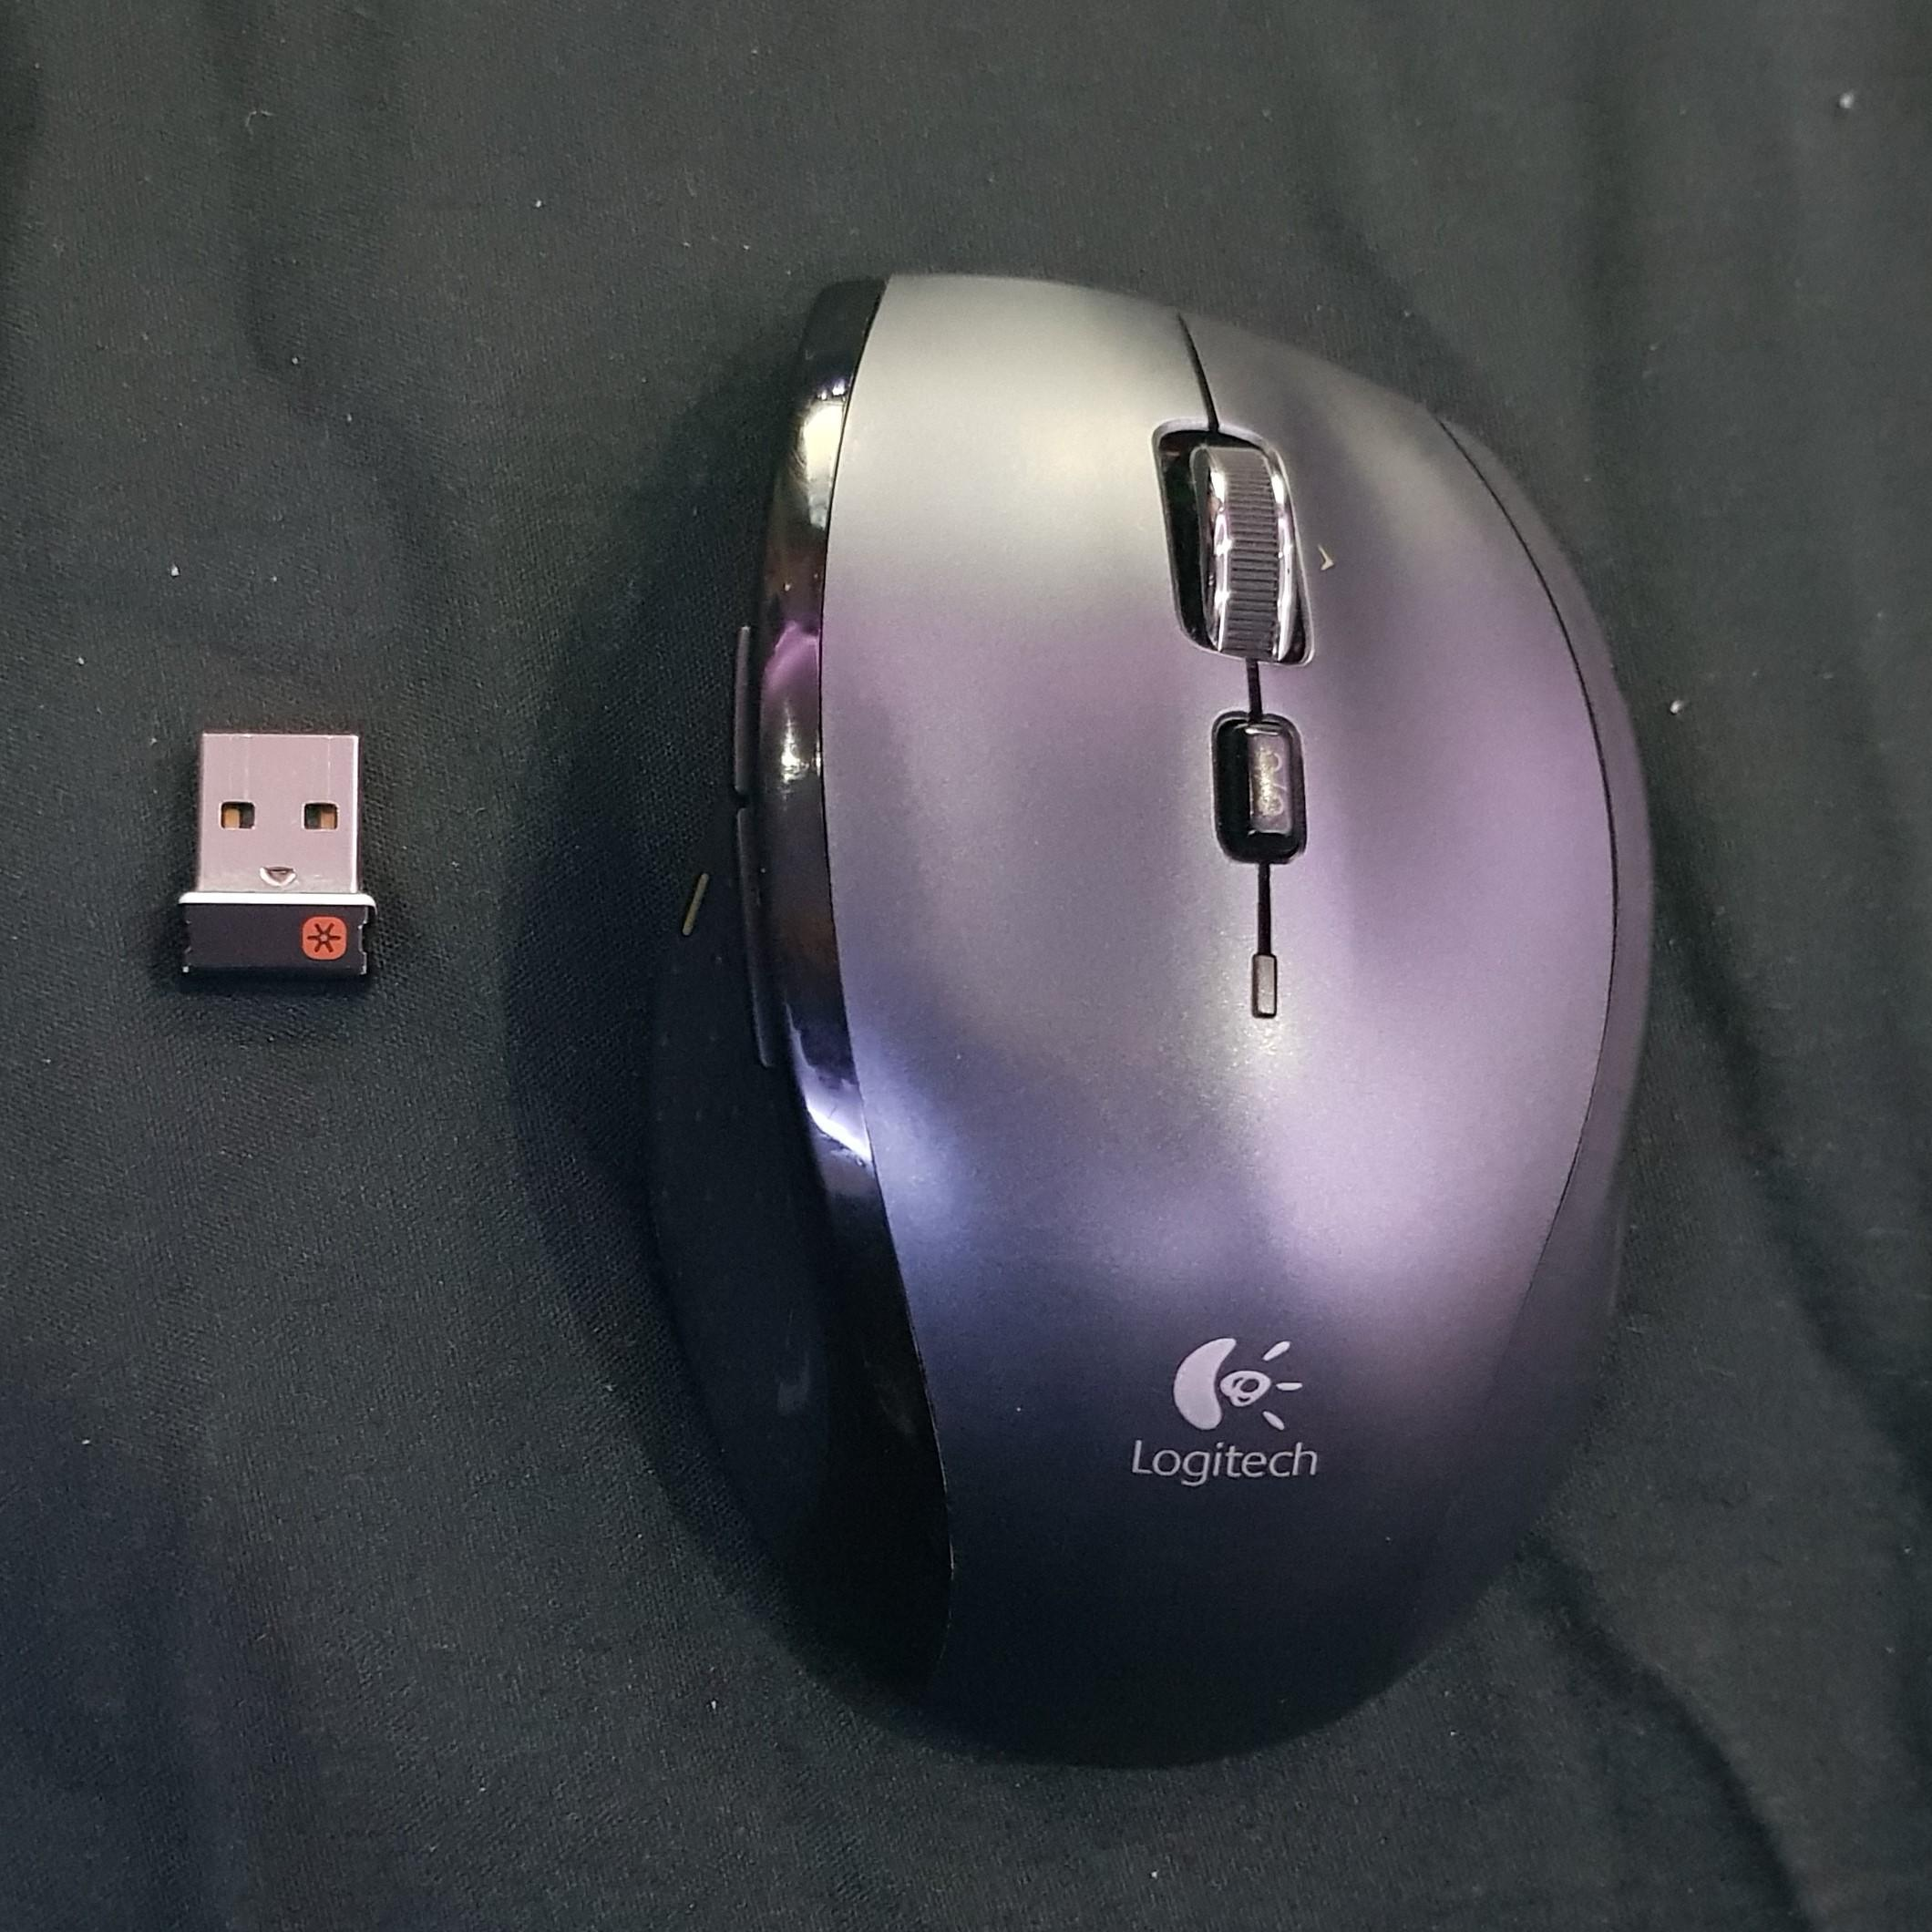 Logitech M705 Wireless Laser Mouse RRP £40